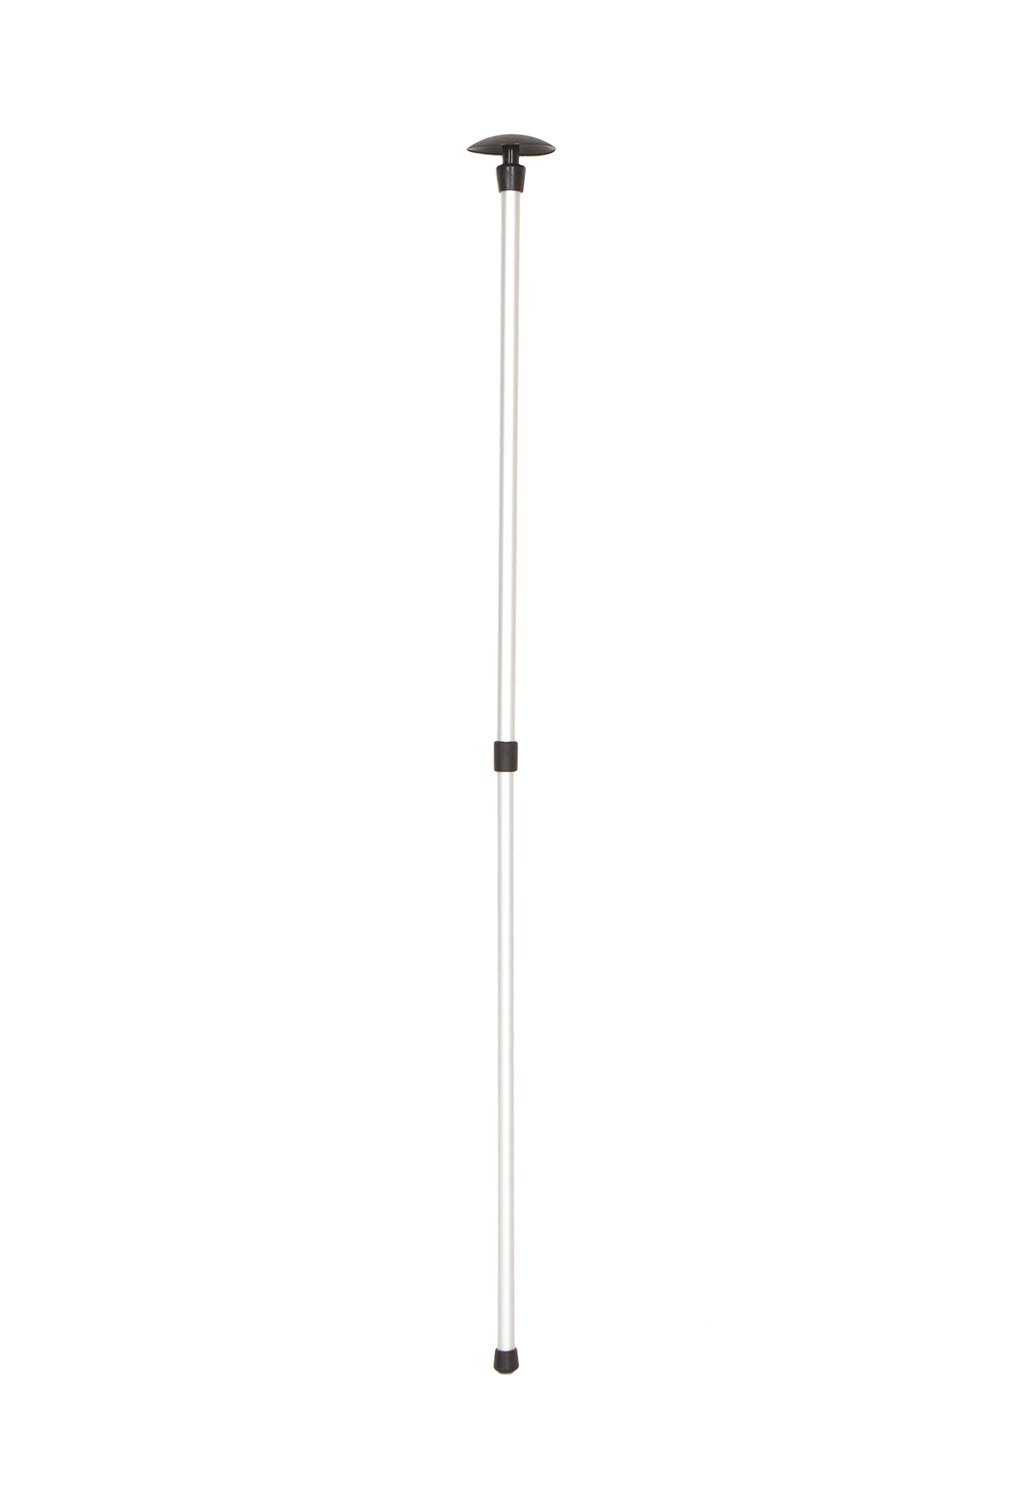 """Redneck Convent Telescopic Boat Cover Support, Adjustable Pole System 28.5"""" to 51.25"""" Inches – Repels Water and Debris on Any Marine Boat"""